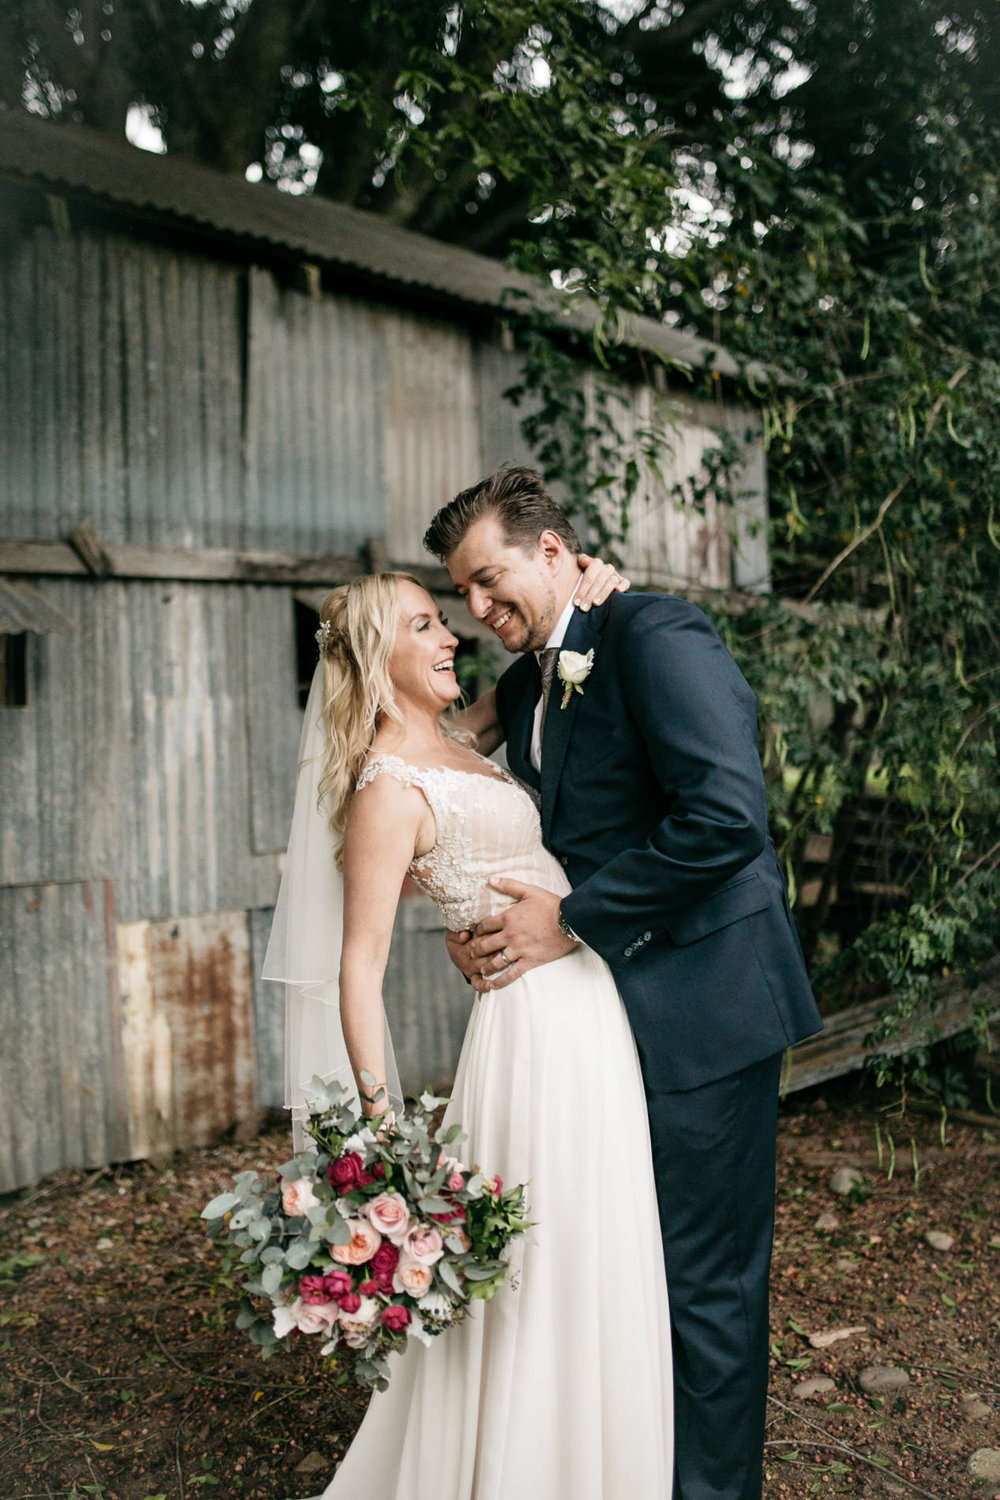 True North Photography_Boomerang Farm_Stacey and Isaac_Gold Coast Wedding_Barm Wedding_Hinterland Wedding-161.jpg